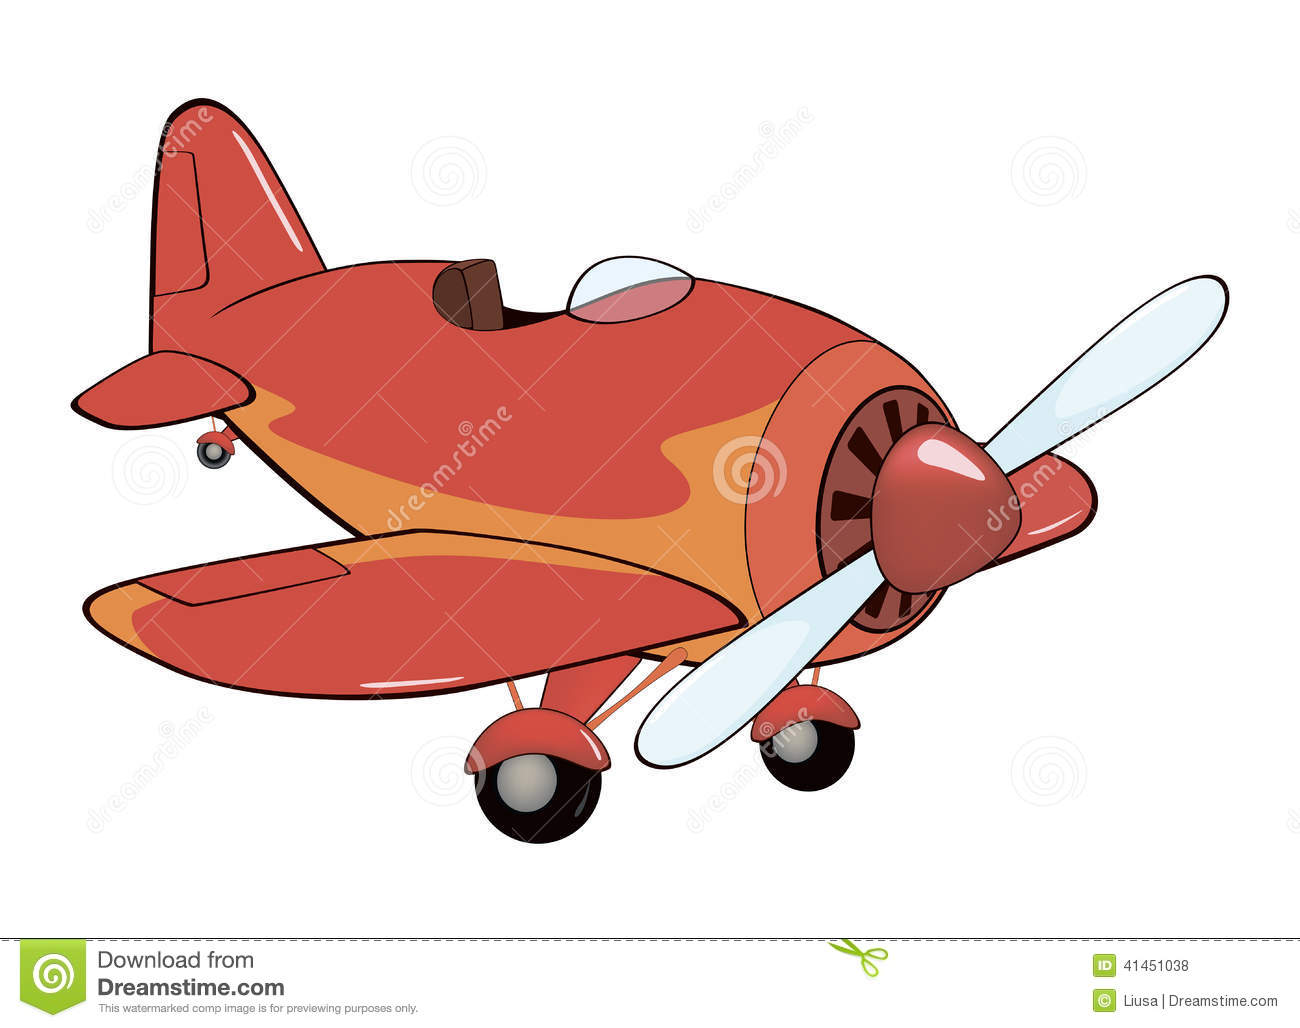 The Old Red Plane Cartoon Stock Vector Illustration Of Glasses